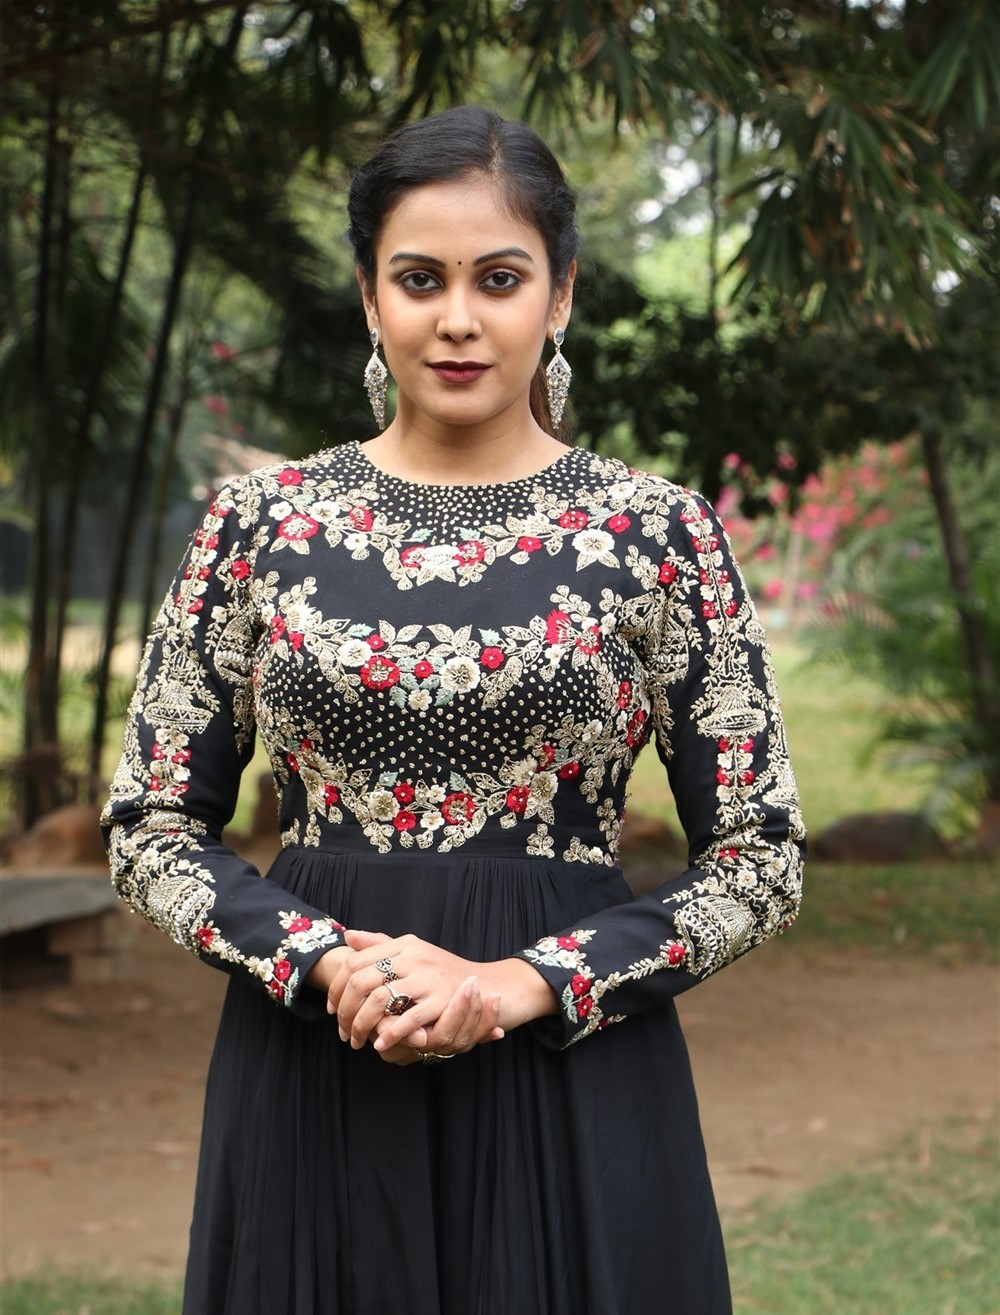 actress-chandini-tamilarasan-beautiful-photos-5